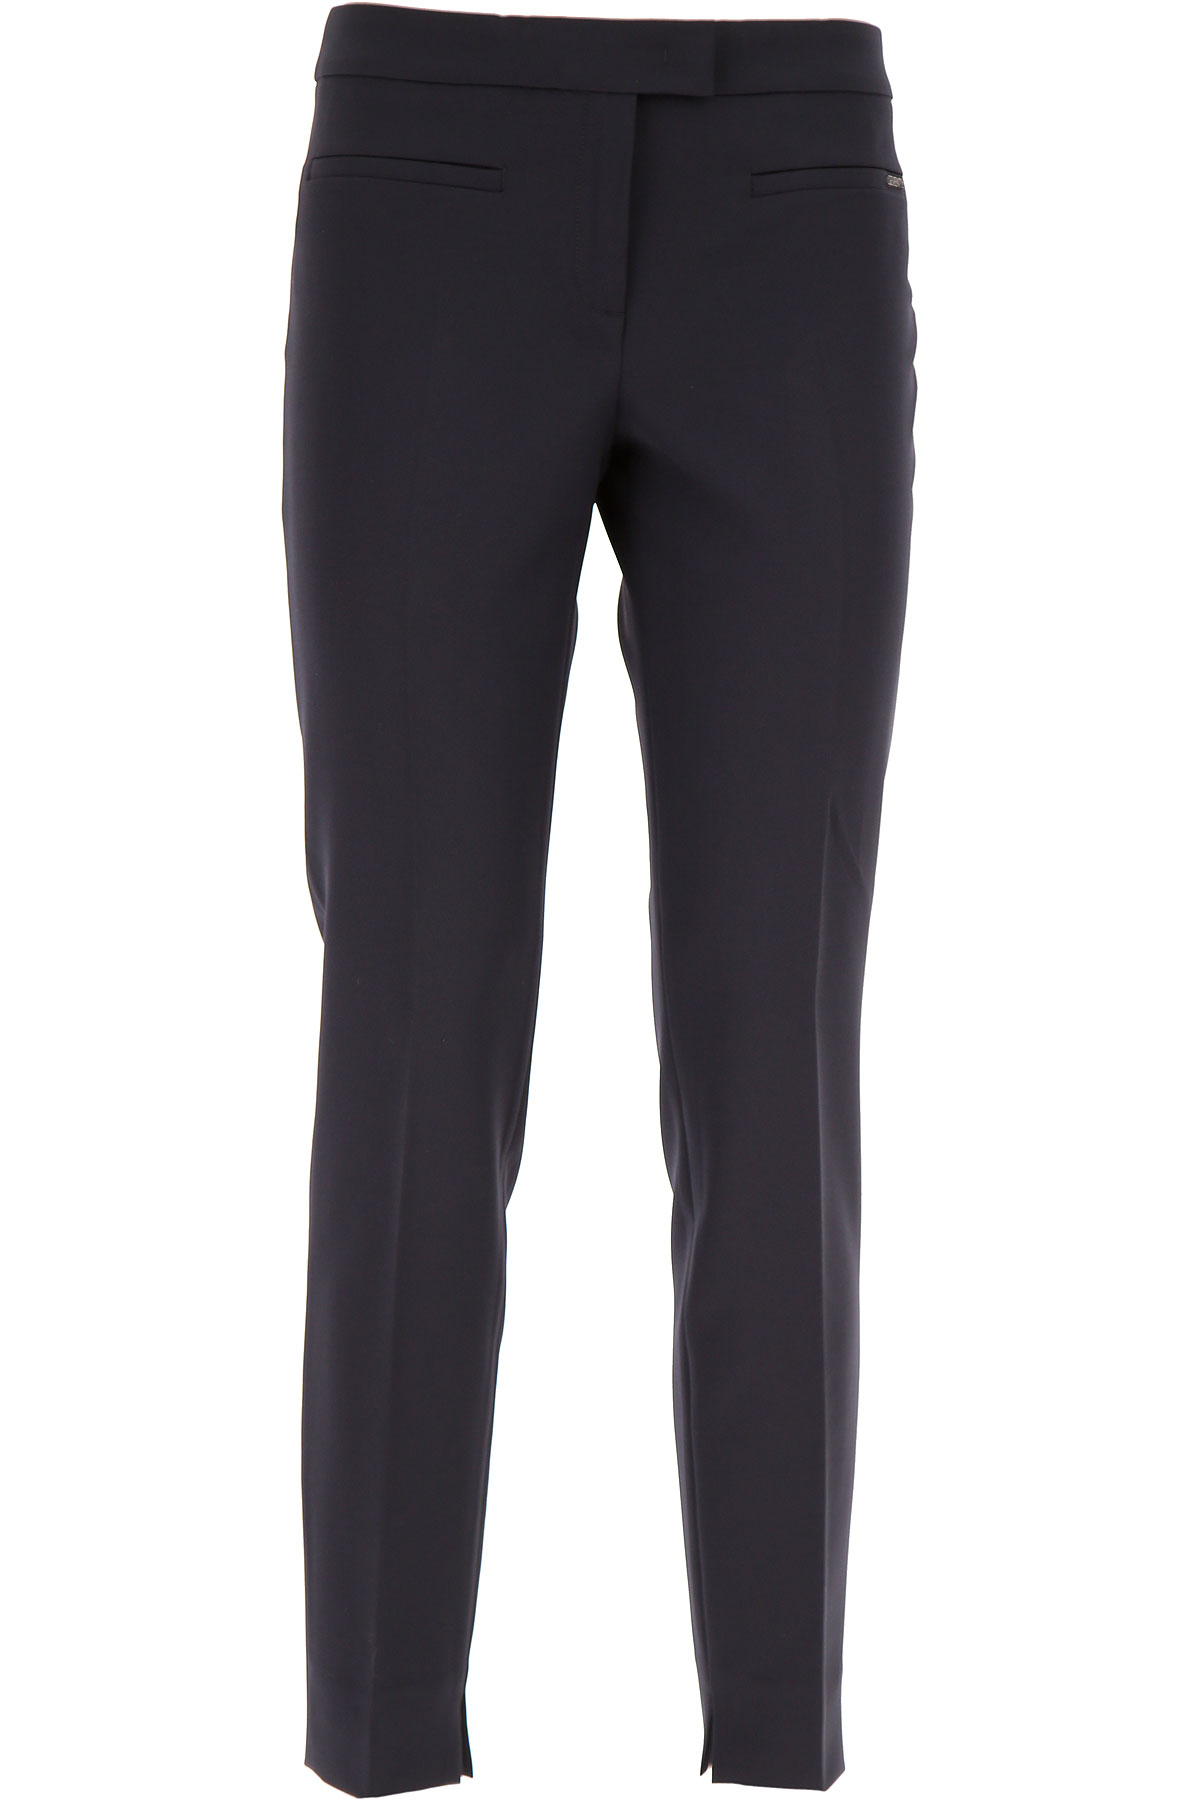 Image of Seventy Pants for Women On Sale, navy, poliestere, 2017, 10 2 4 6 8